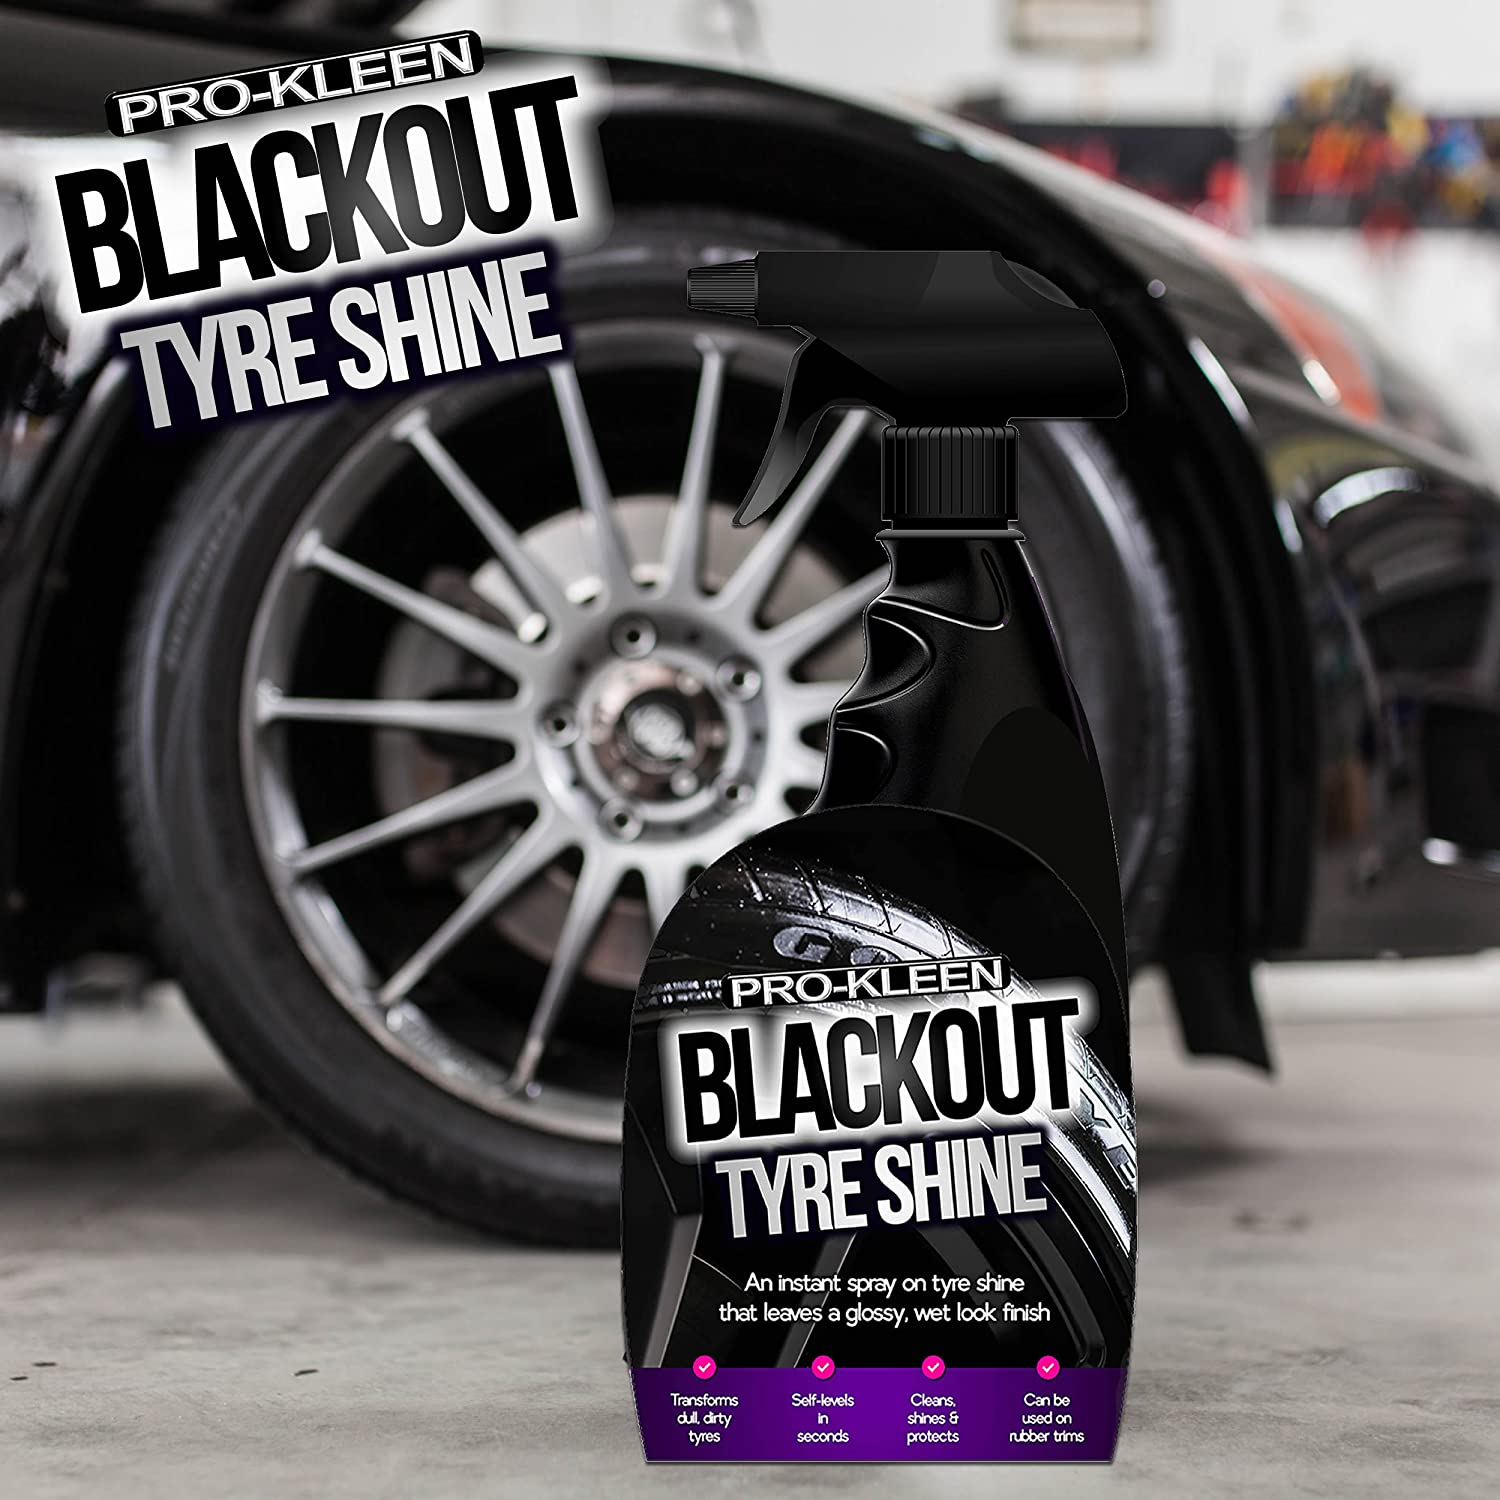 Pro-Kleen Blackout Tyre Shine Spray for a Wet Look Glossy Finish  Revitalises Dull Tyres Premium Grade Instant Tyre Dressing Cleans, Shines &  Protects